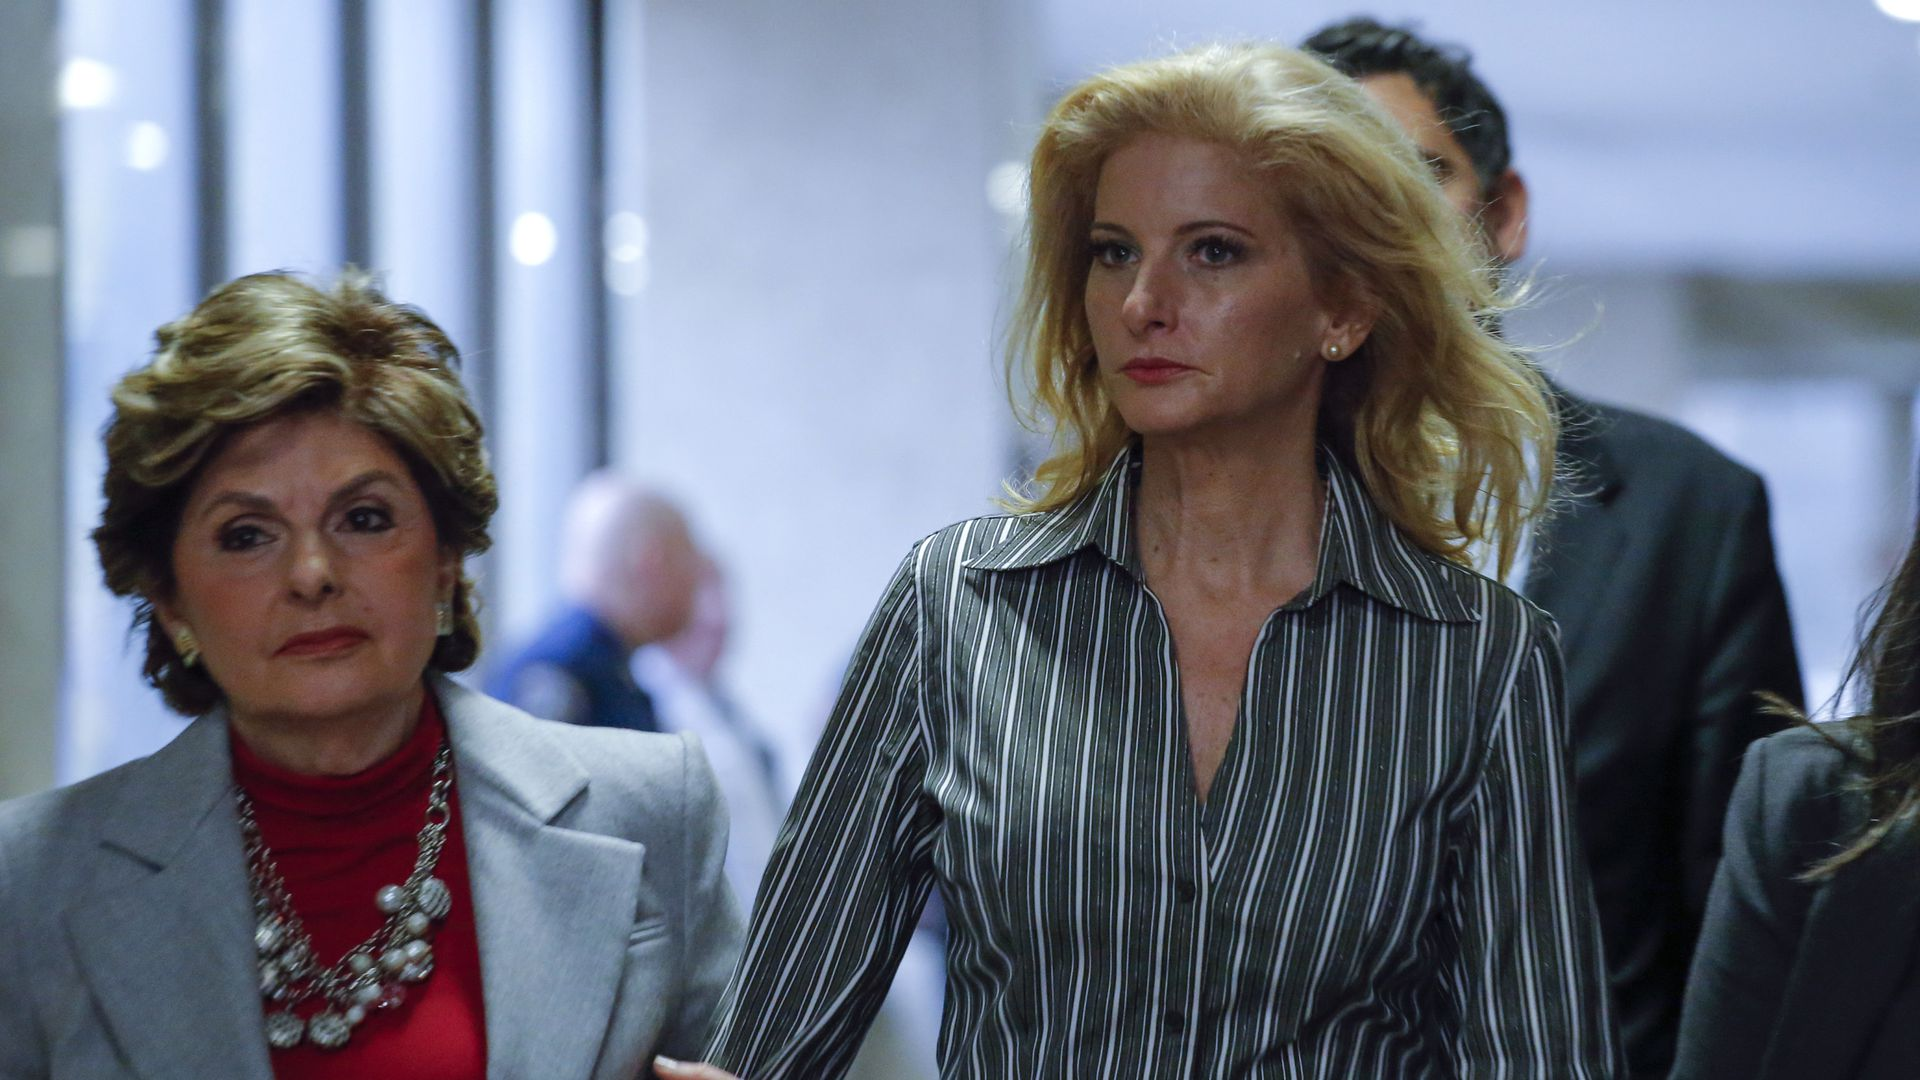 Summer Zervos, (R) a former contestant on 'The Apprentice' arrives with lawyer Gloria Allred.